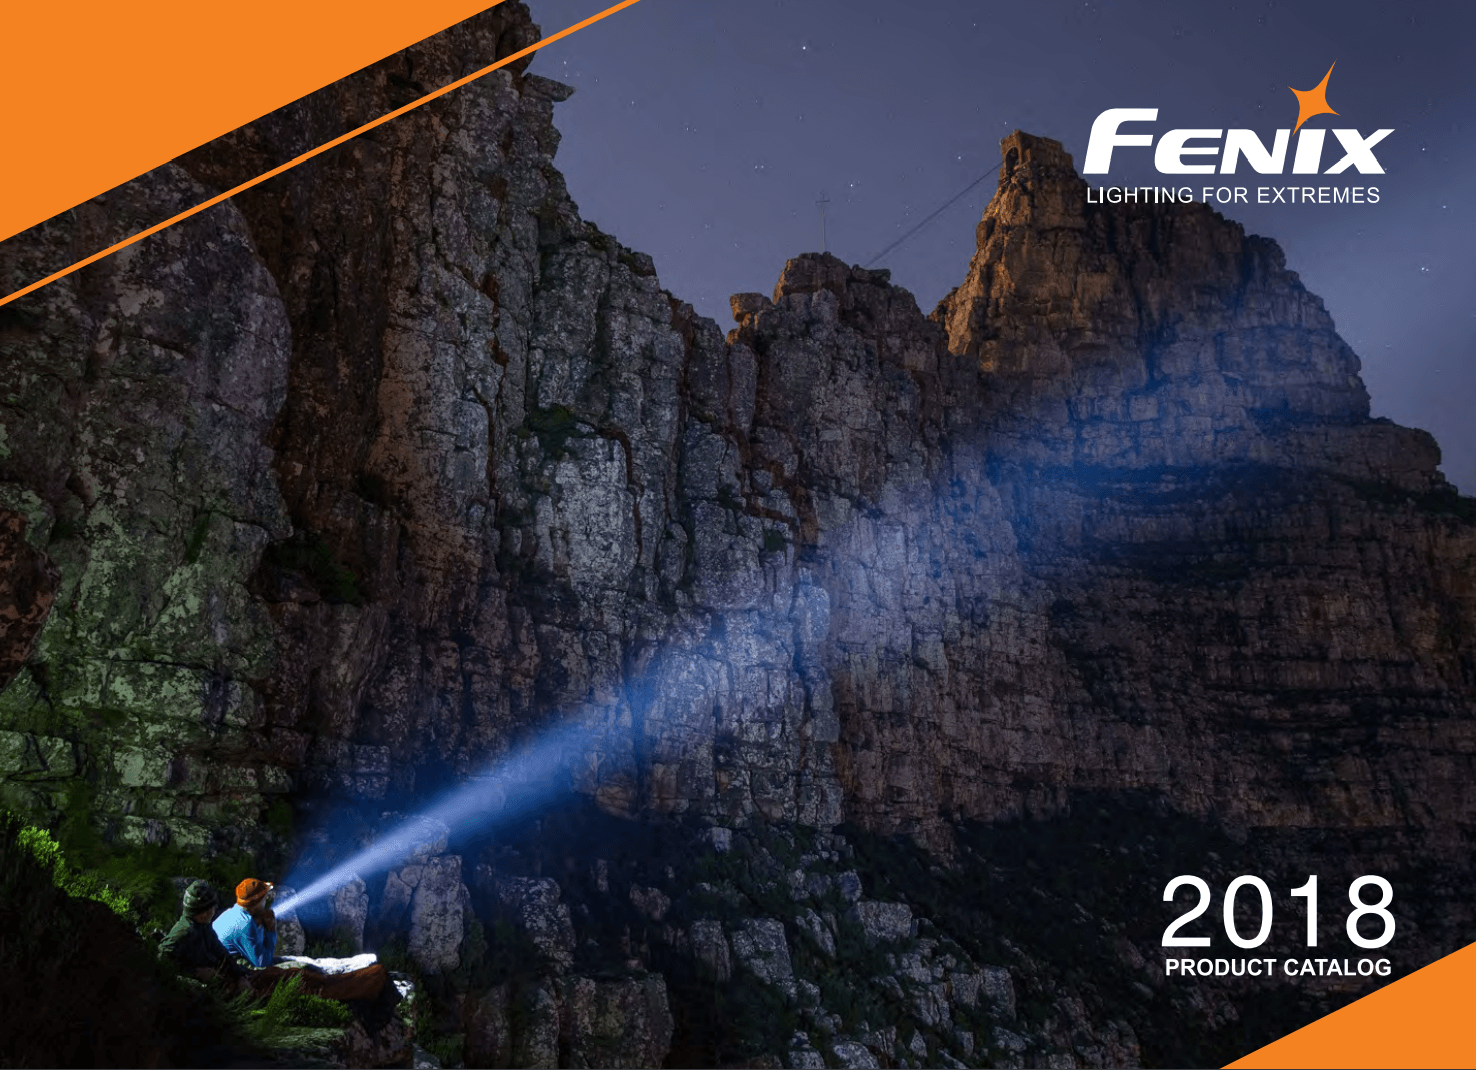 Fenix Flashlight Catalog 2018